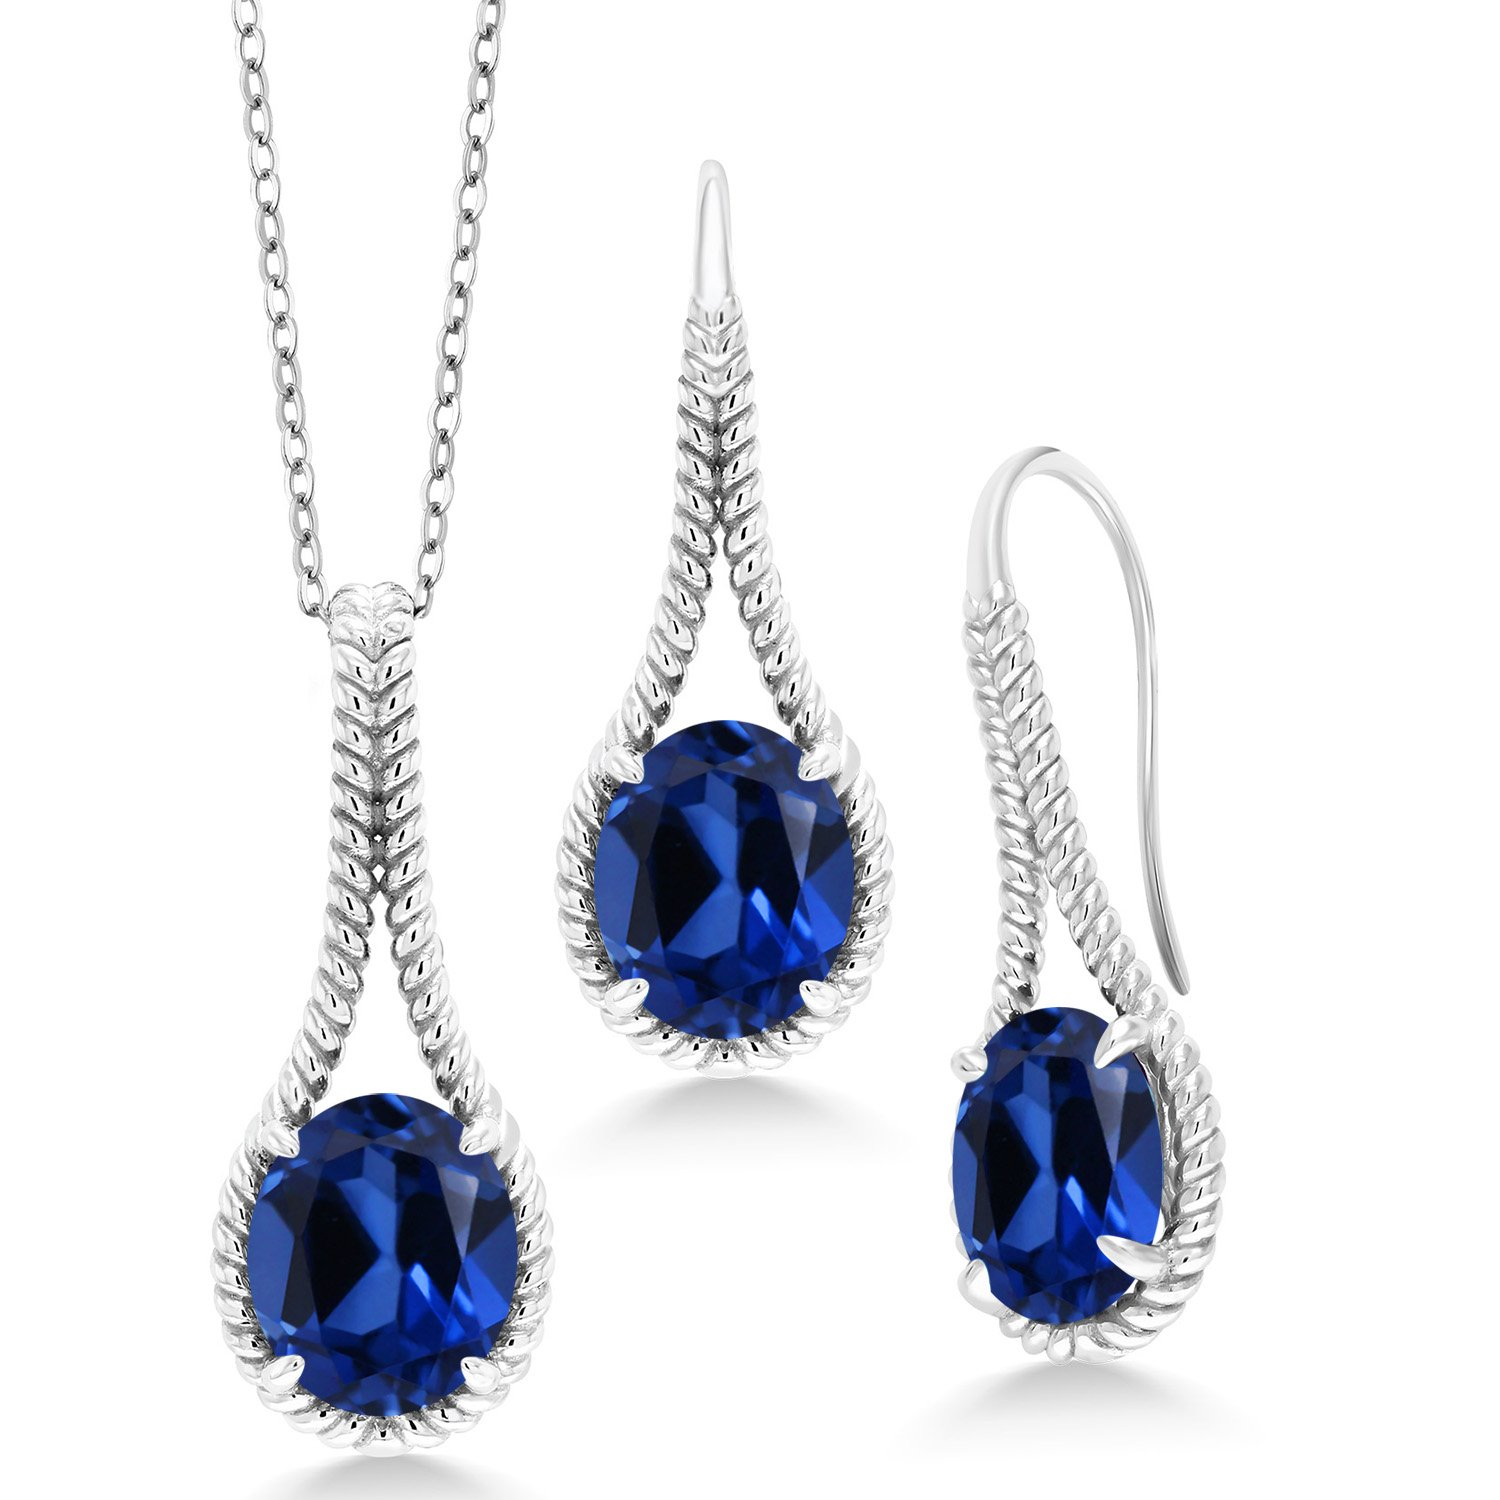 18.39 Ct Blue Simulated Sapphire 925 Silver Pendant Earrings Set With Chain